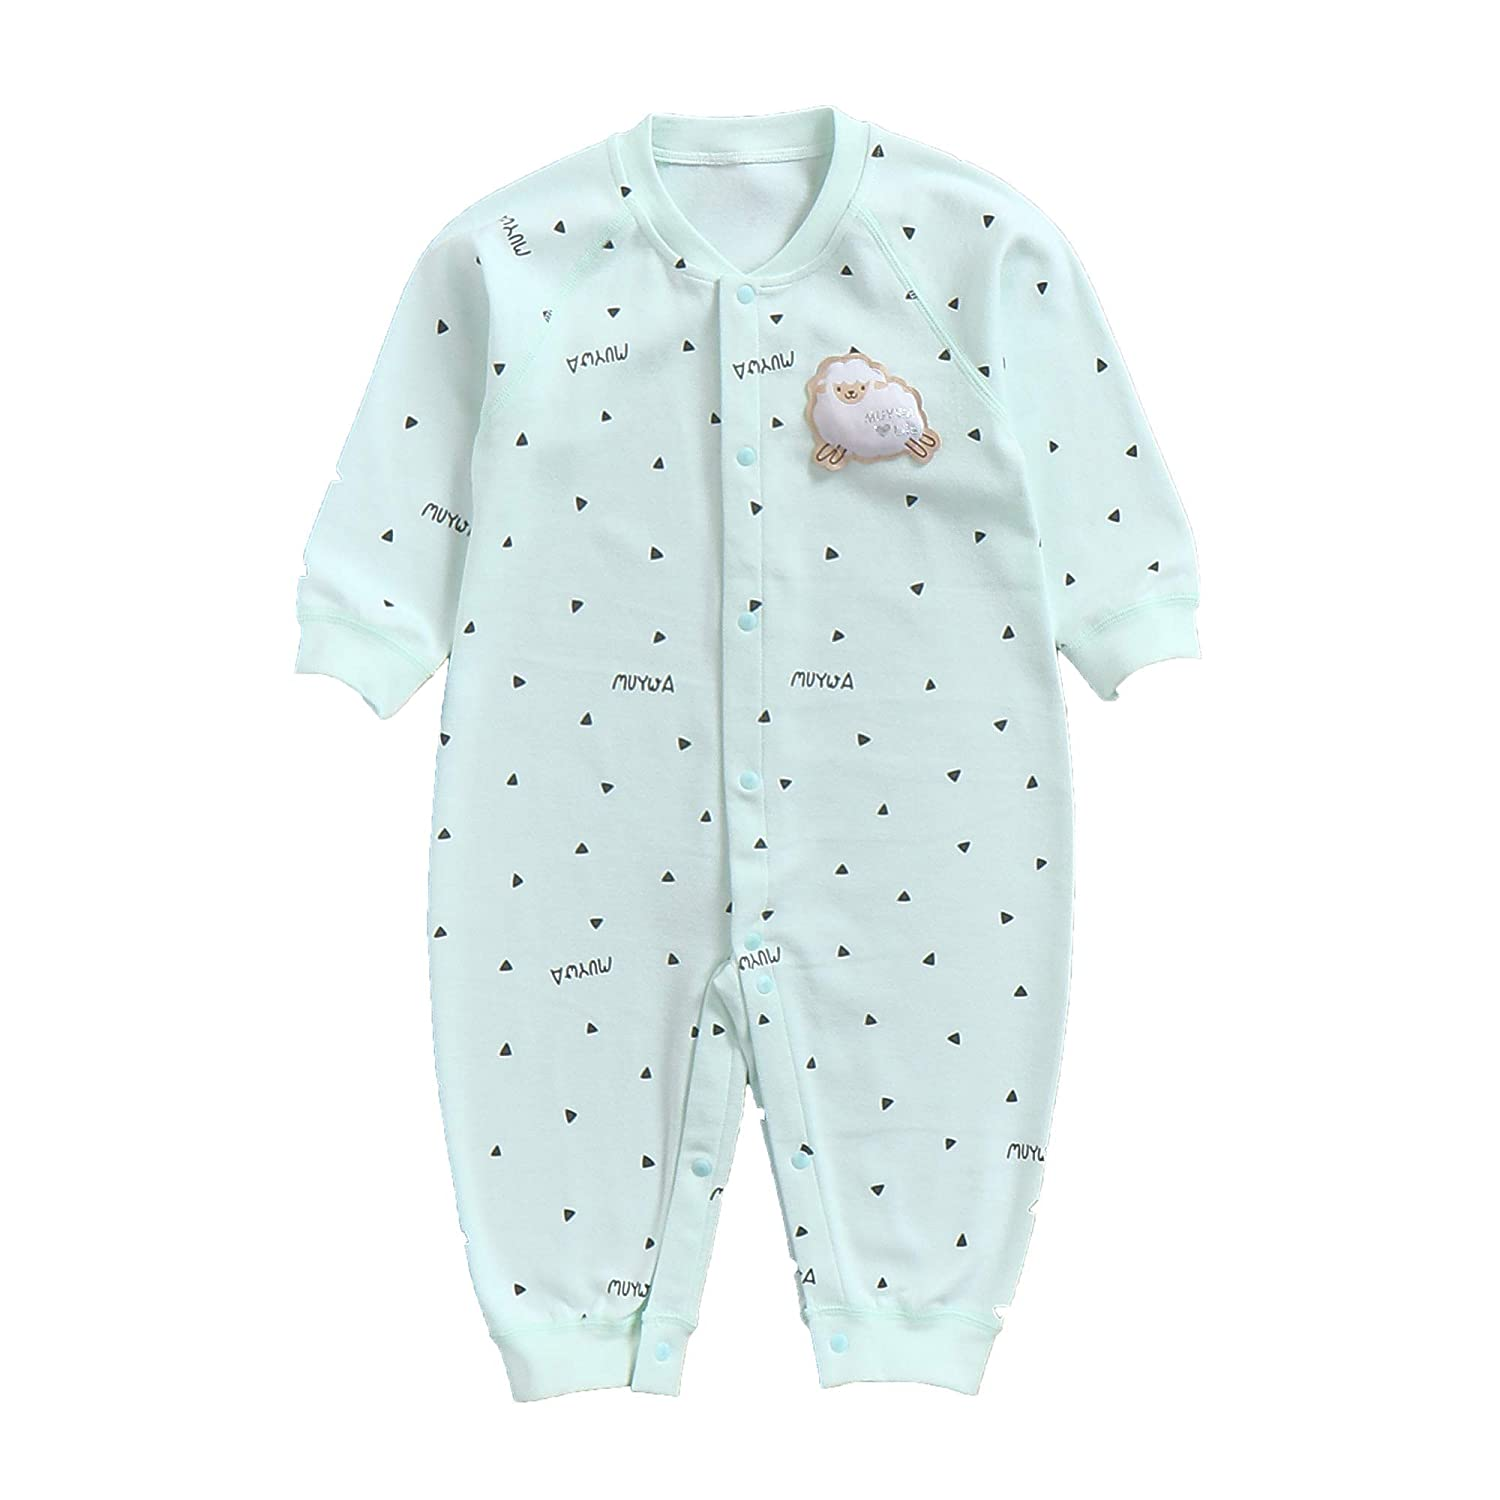 03adab6491 Amazon.com  MuYwa Footless Pajamas Baby Sleeper Cotton Kids   Toddler Pjs  Snap Sleep and Play Onesies Unisex  Clothing